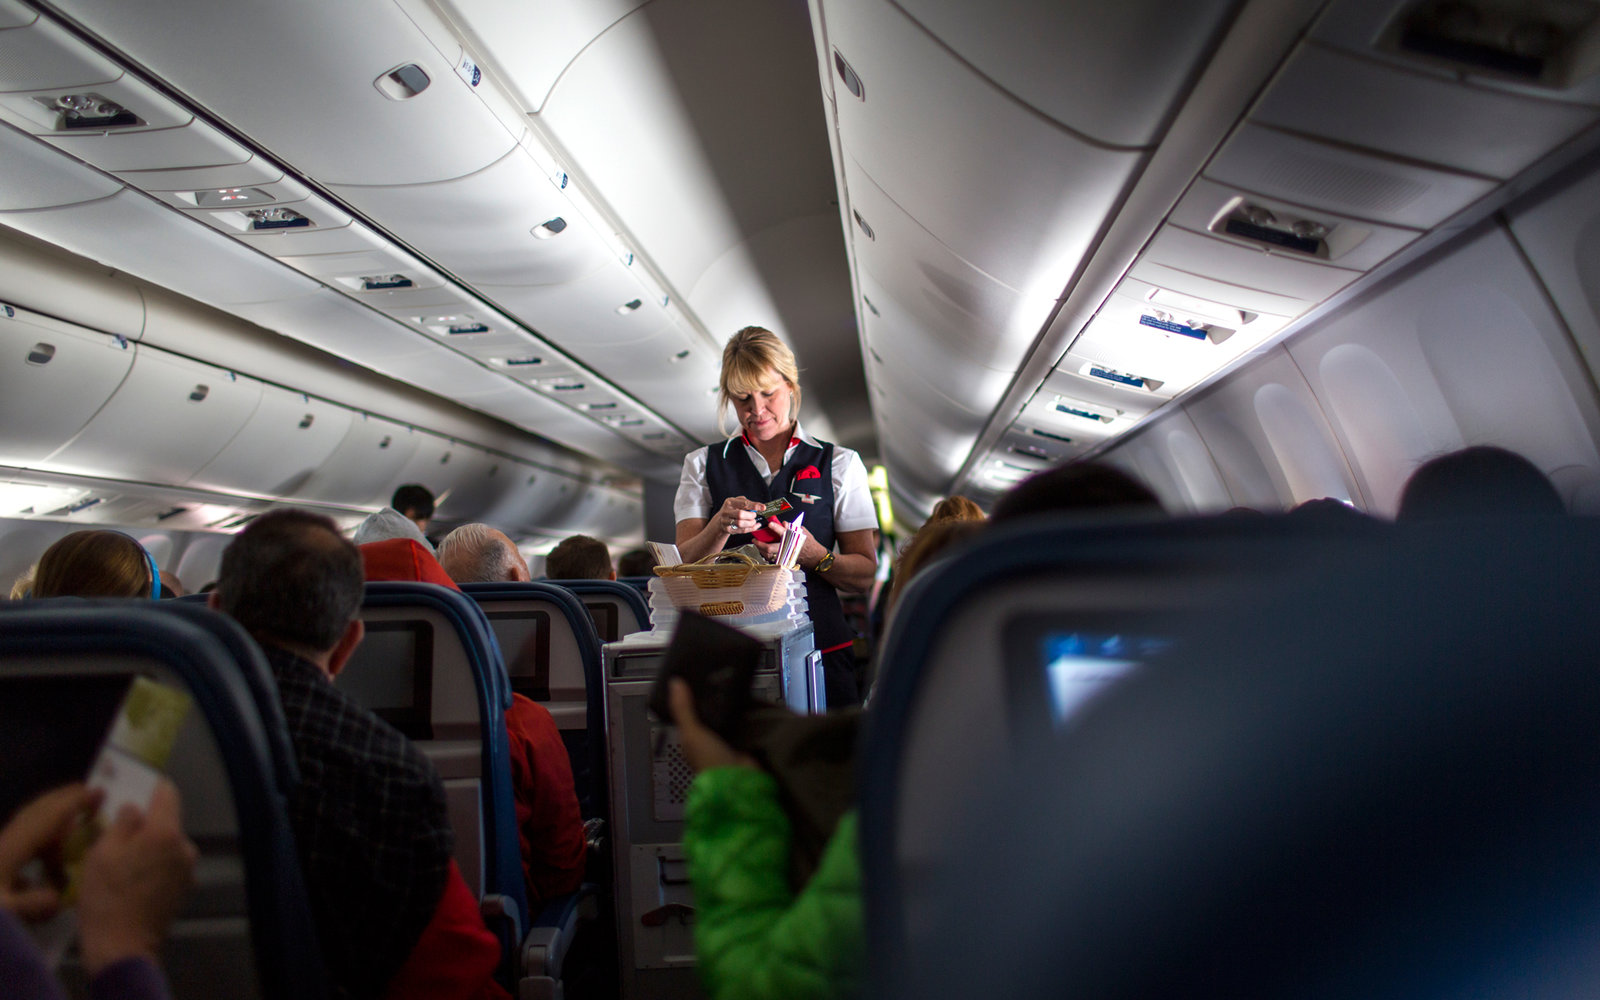 Delta makes in flight entertainment free travel leisure for Air travel with dog in cabin